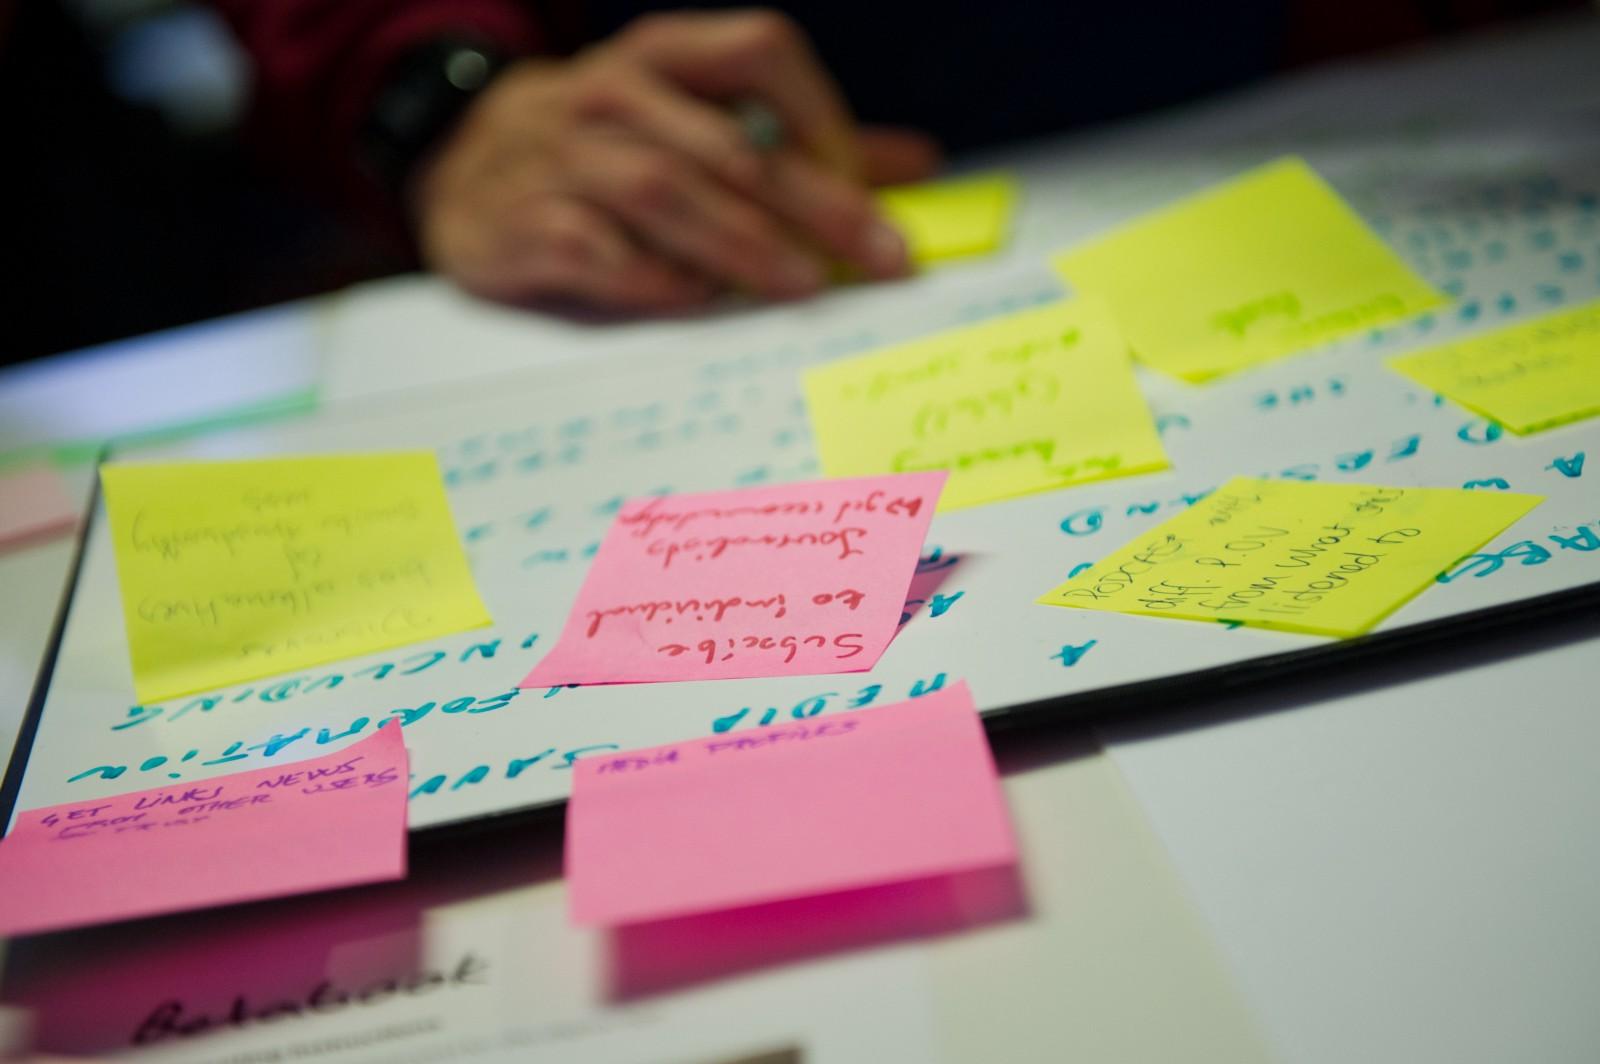 The future, inevitably, involves lots and lots of sticky notes